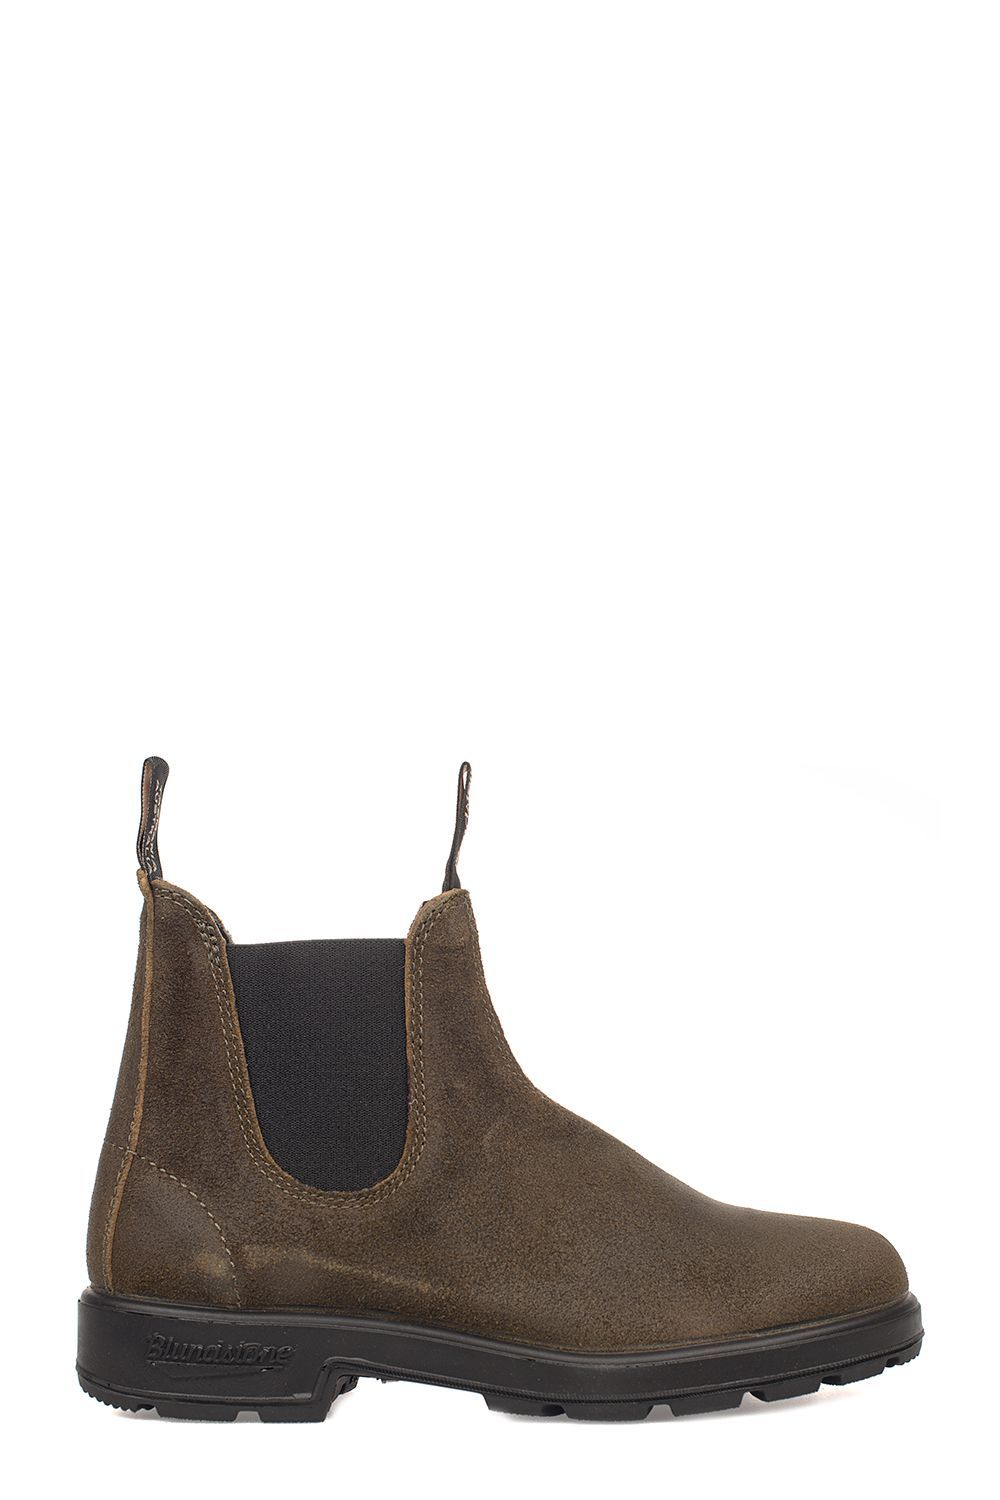 f973365fe99e74 BLUNDSTONE BROWN SUEDE LOW BOOT. #blundstone #shoes Blundstone Shoes,  Blundstone Mens,